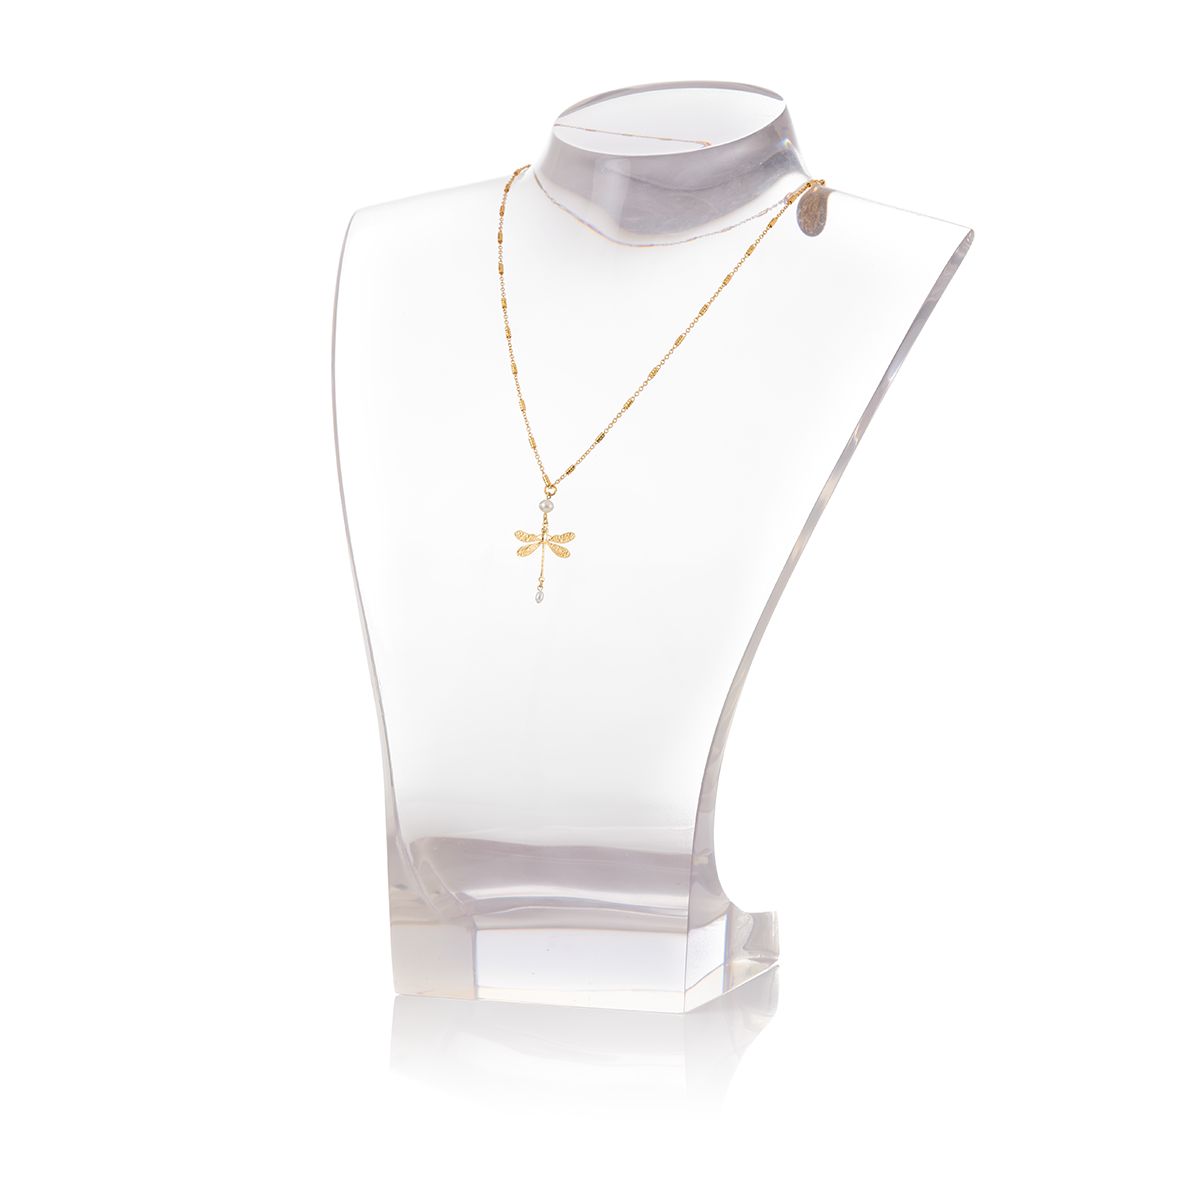 JEANNE Necklace Gold-Plated Dragonfly